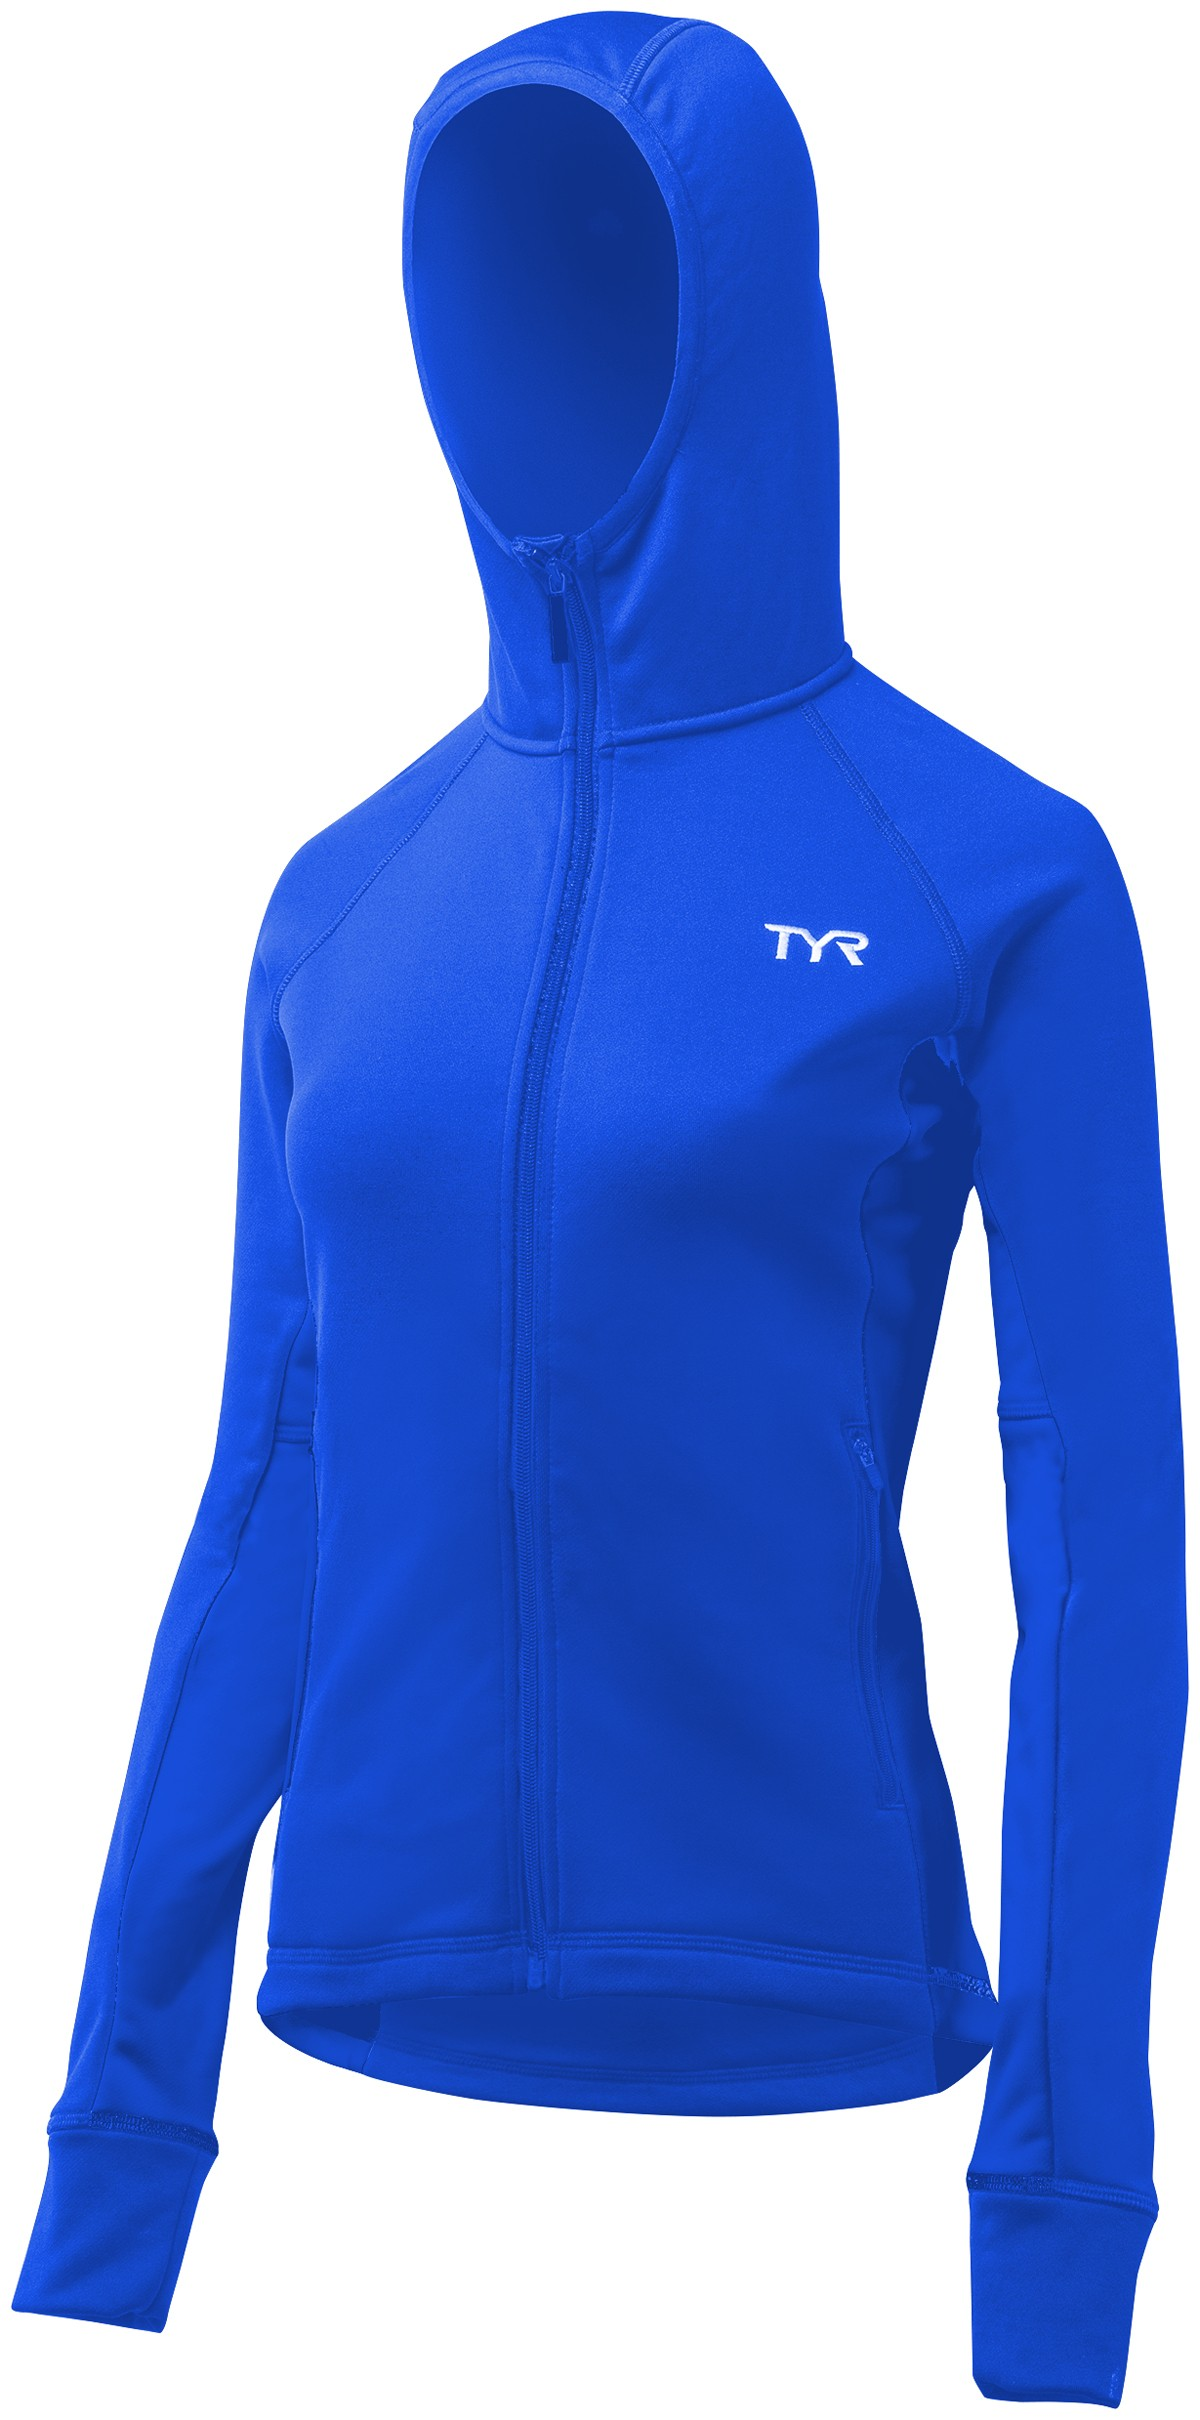 c158ca0e5 Women's Alliance Victory Warm Up Jacket